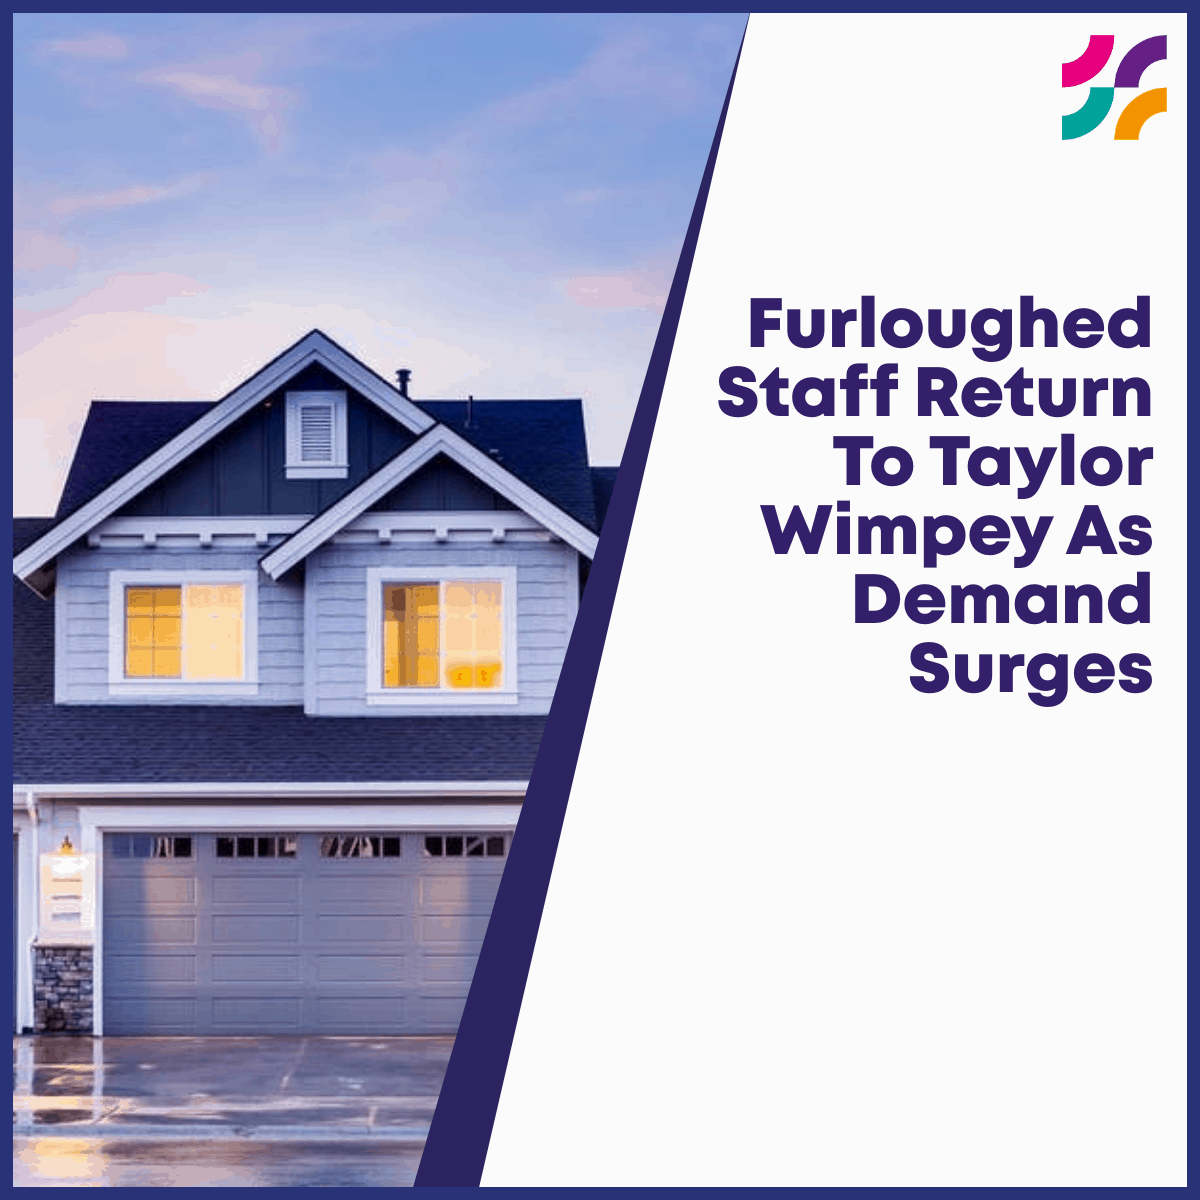 CENTURY 1200x1200 layout355 1fdsfts - Furloughed staff return to Taylor Wimpey as demand surges